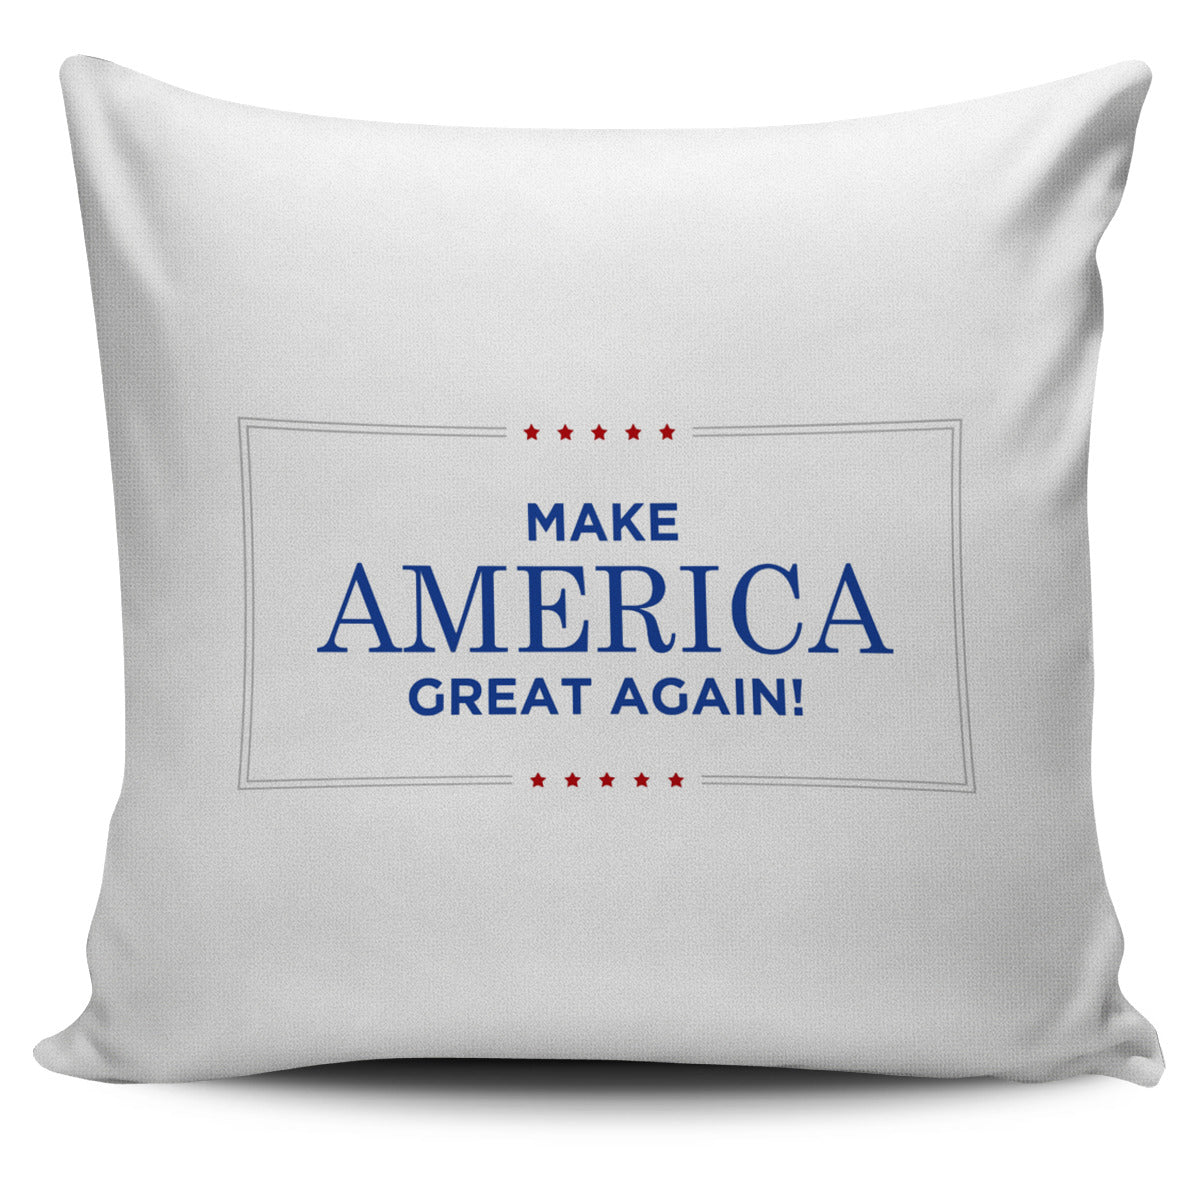 Make America Great Again Pillow Cases